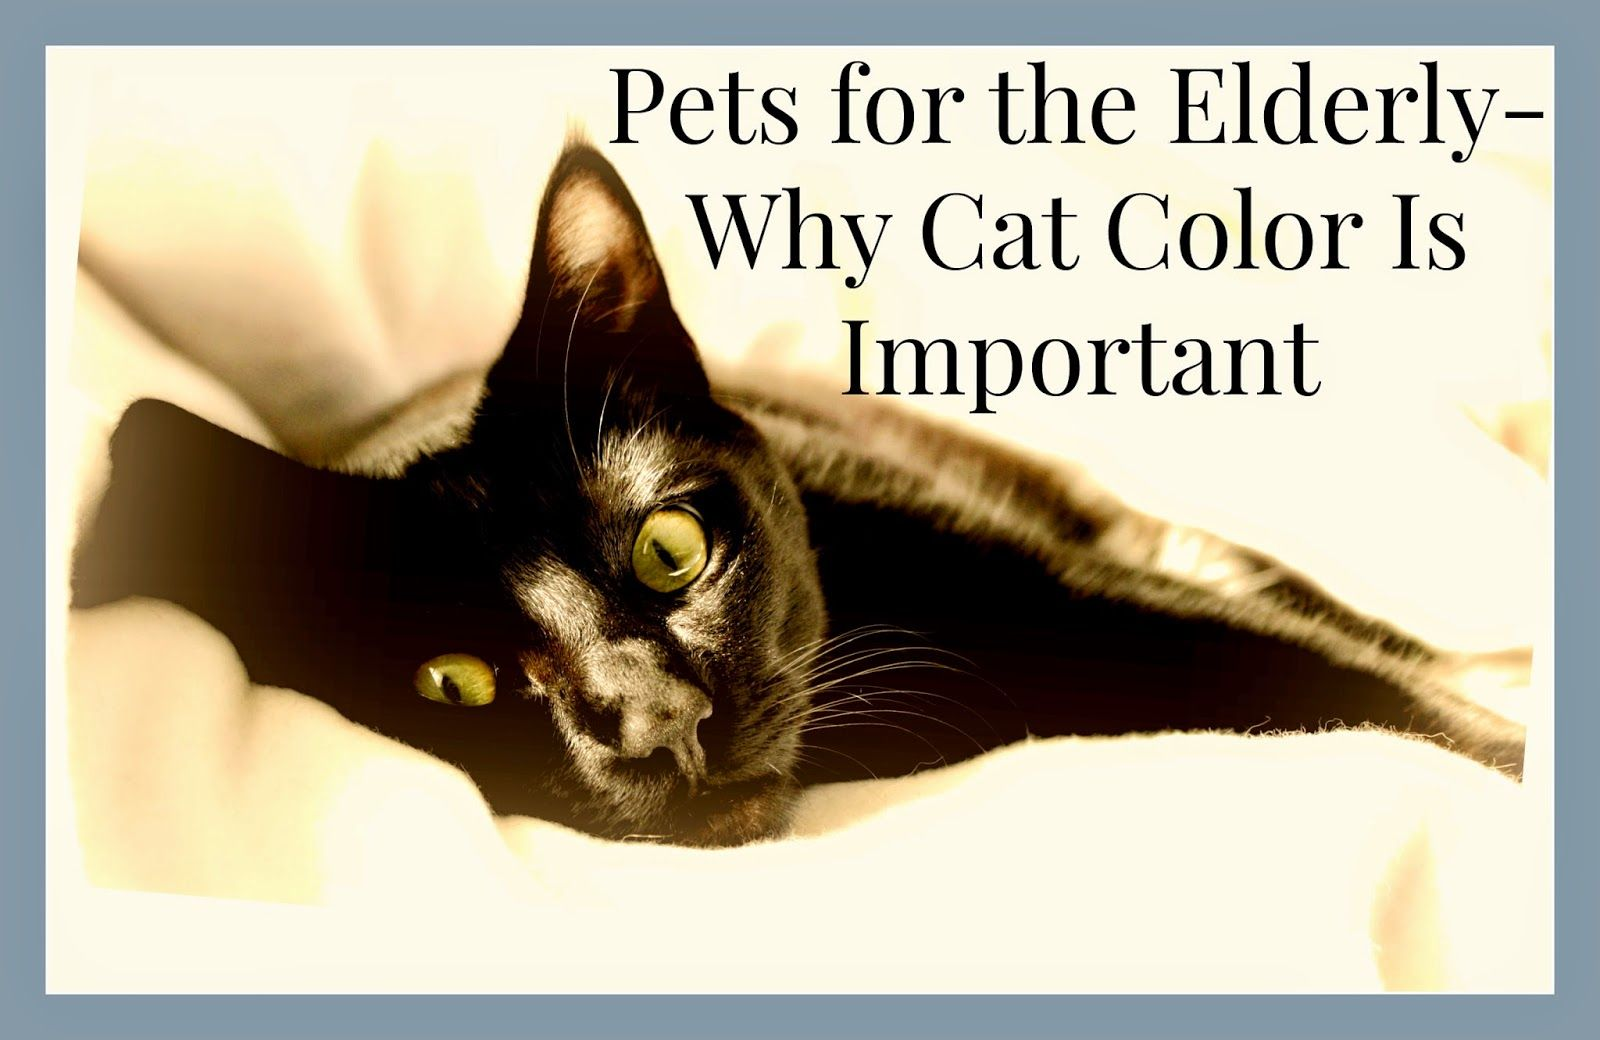 How cat coloration can be important when choosing a pet